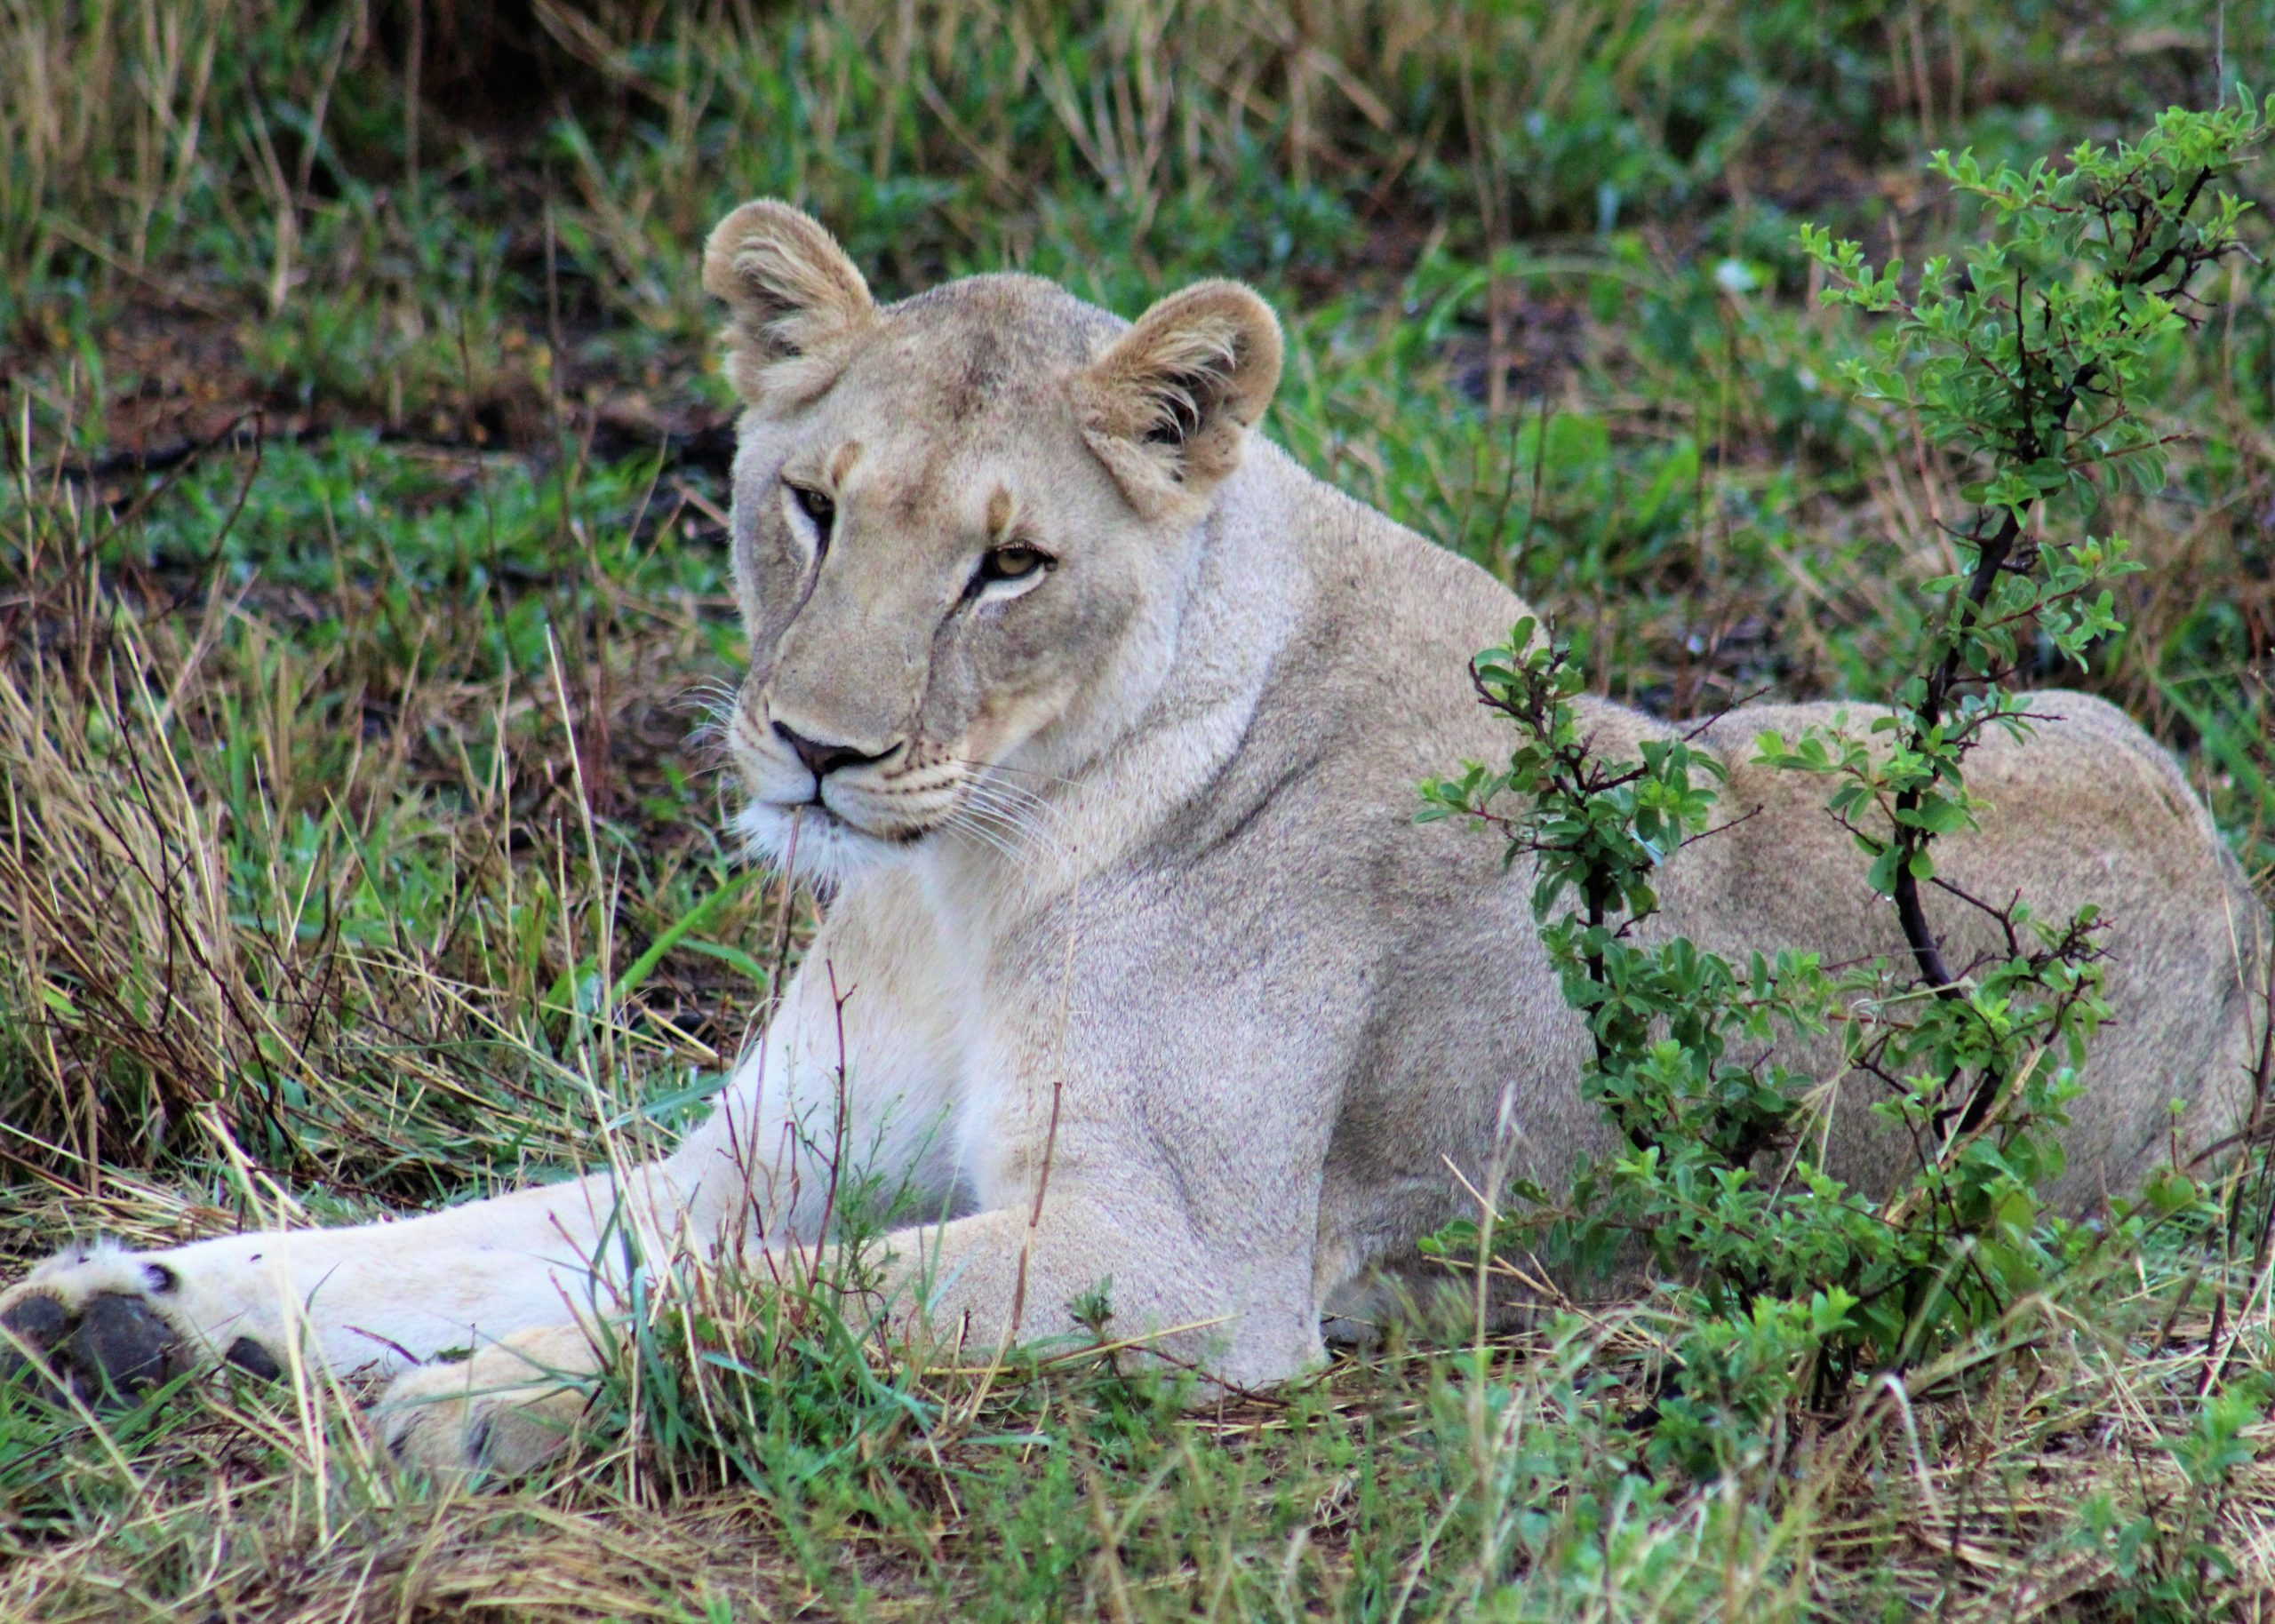 Lioness on our game drives in South Africa